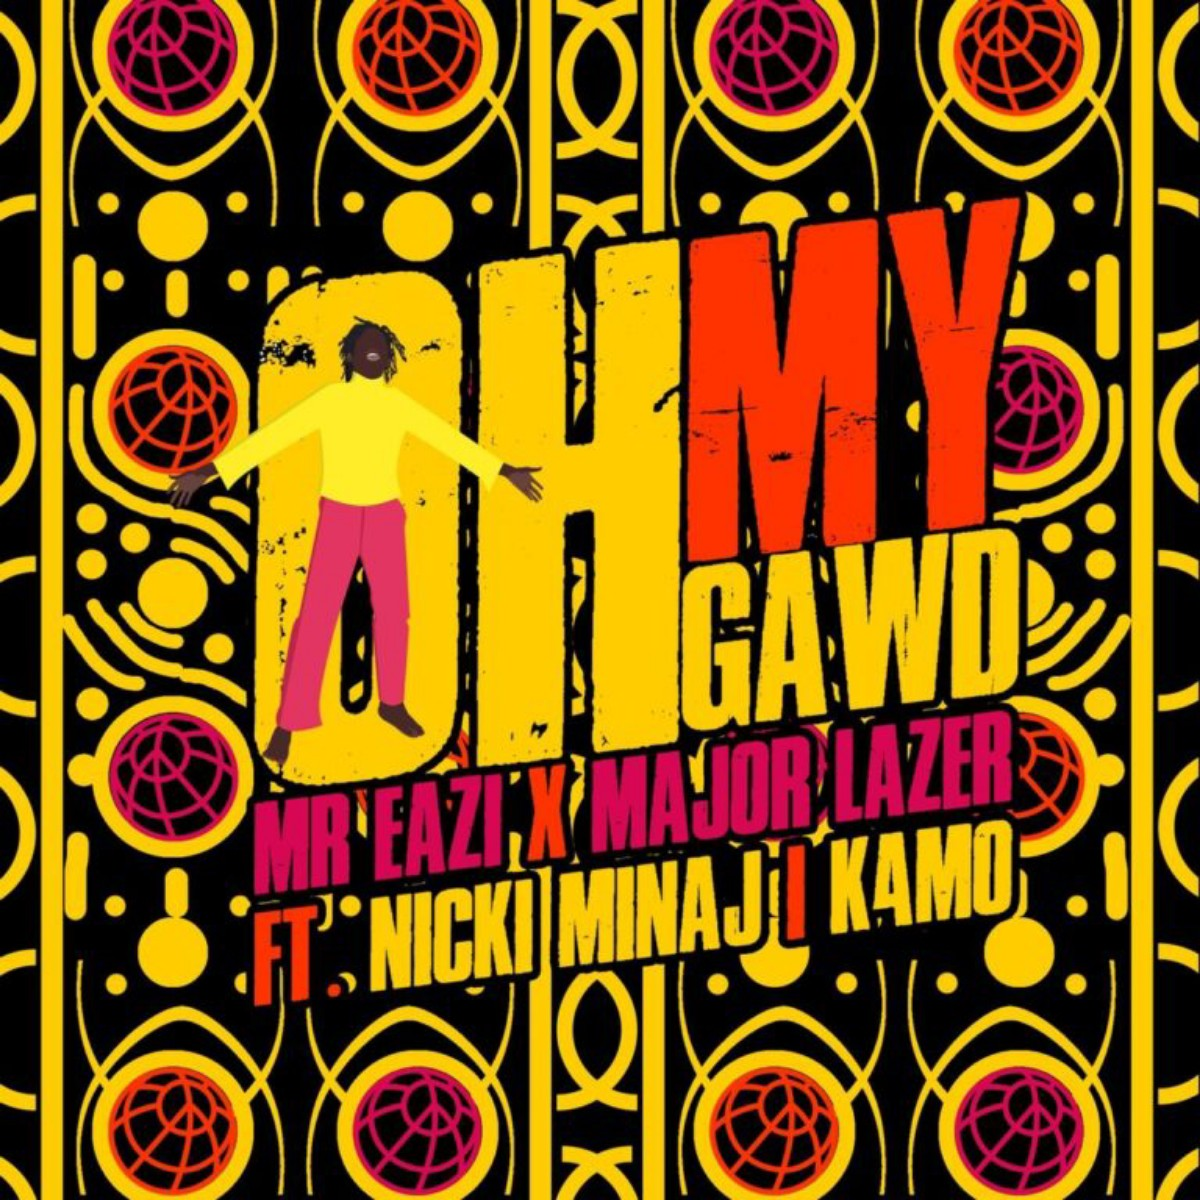 Major Lazer & Mr Eazi - Oh My Gawd (feat. Nicki Minaj & K4mo)